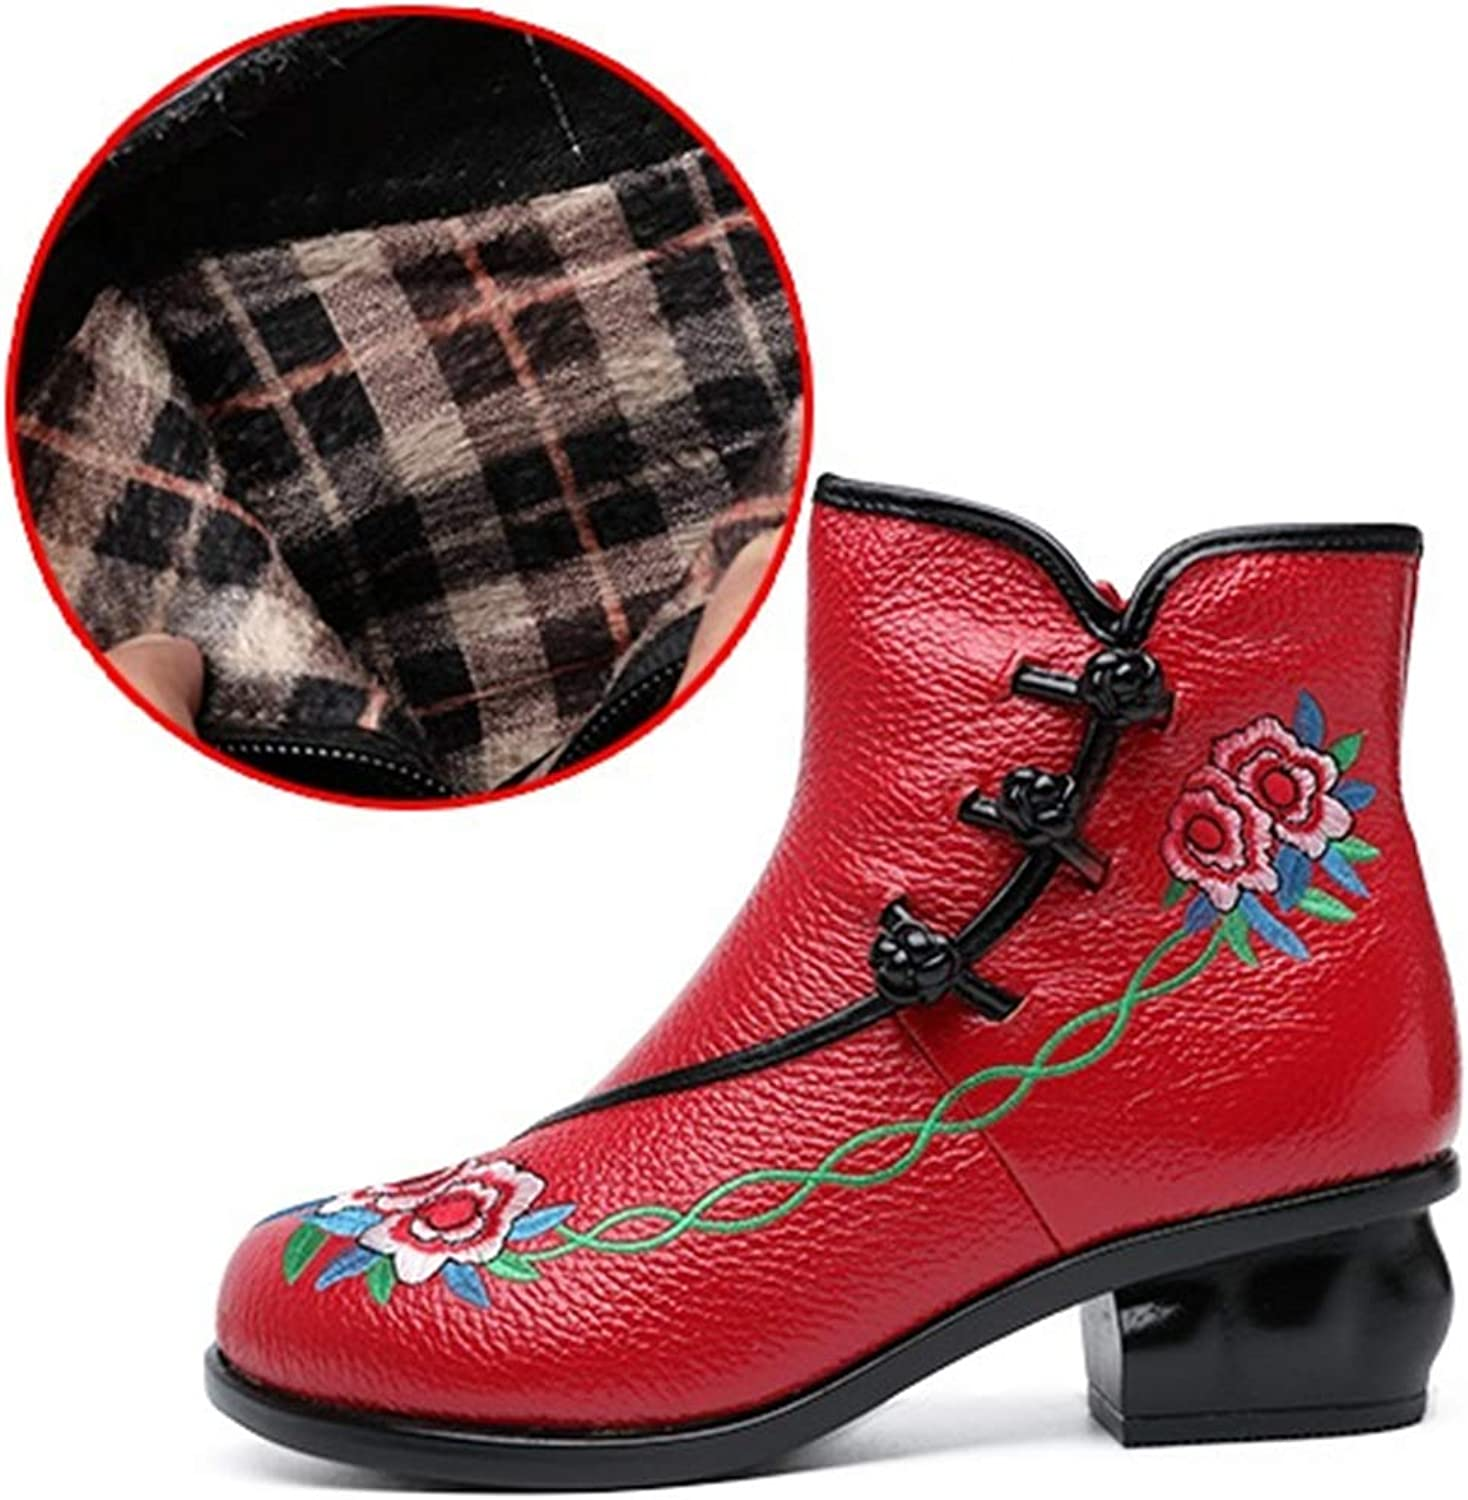 FORTUN Classic Wild Martin Boots Ankle Boots Retro Women's Boots Ankle Boots